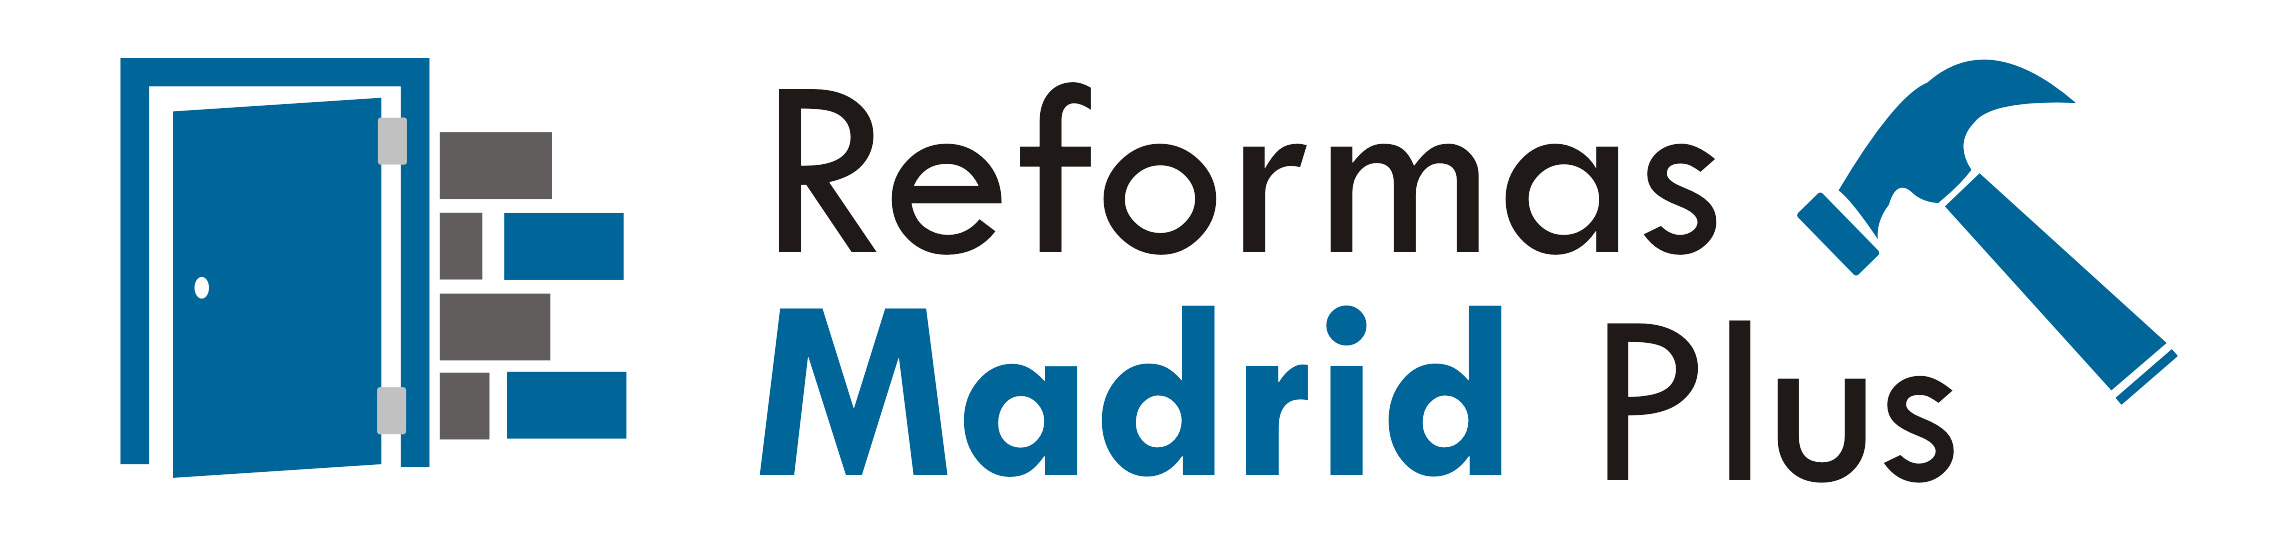 Reformas Madrid Plus